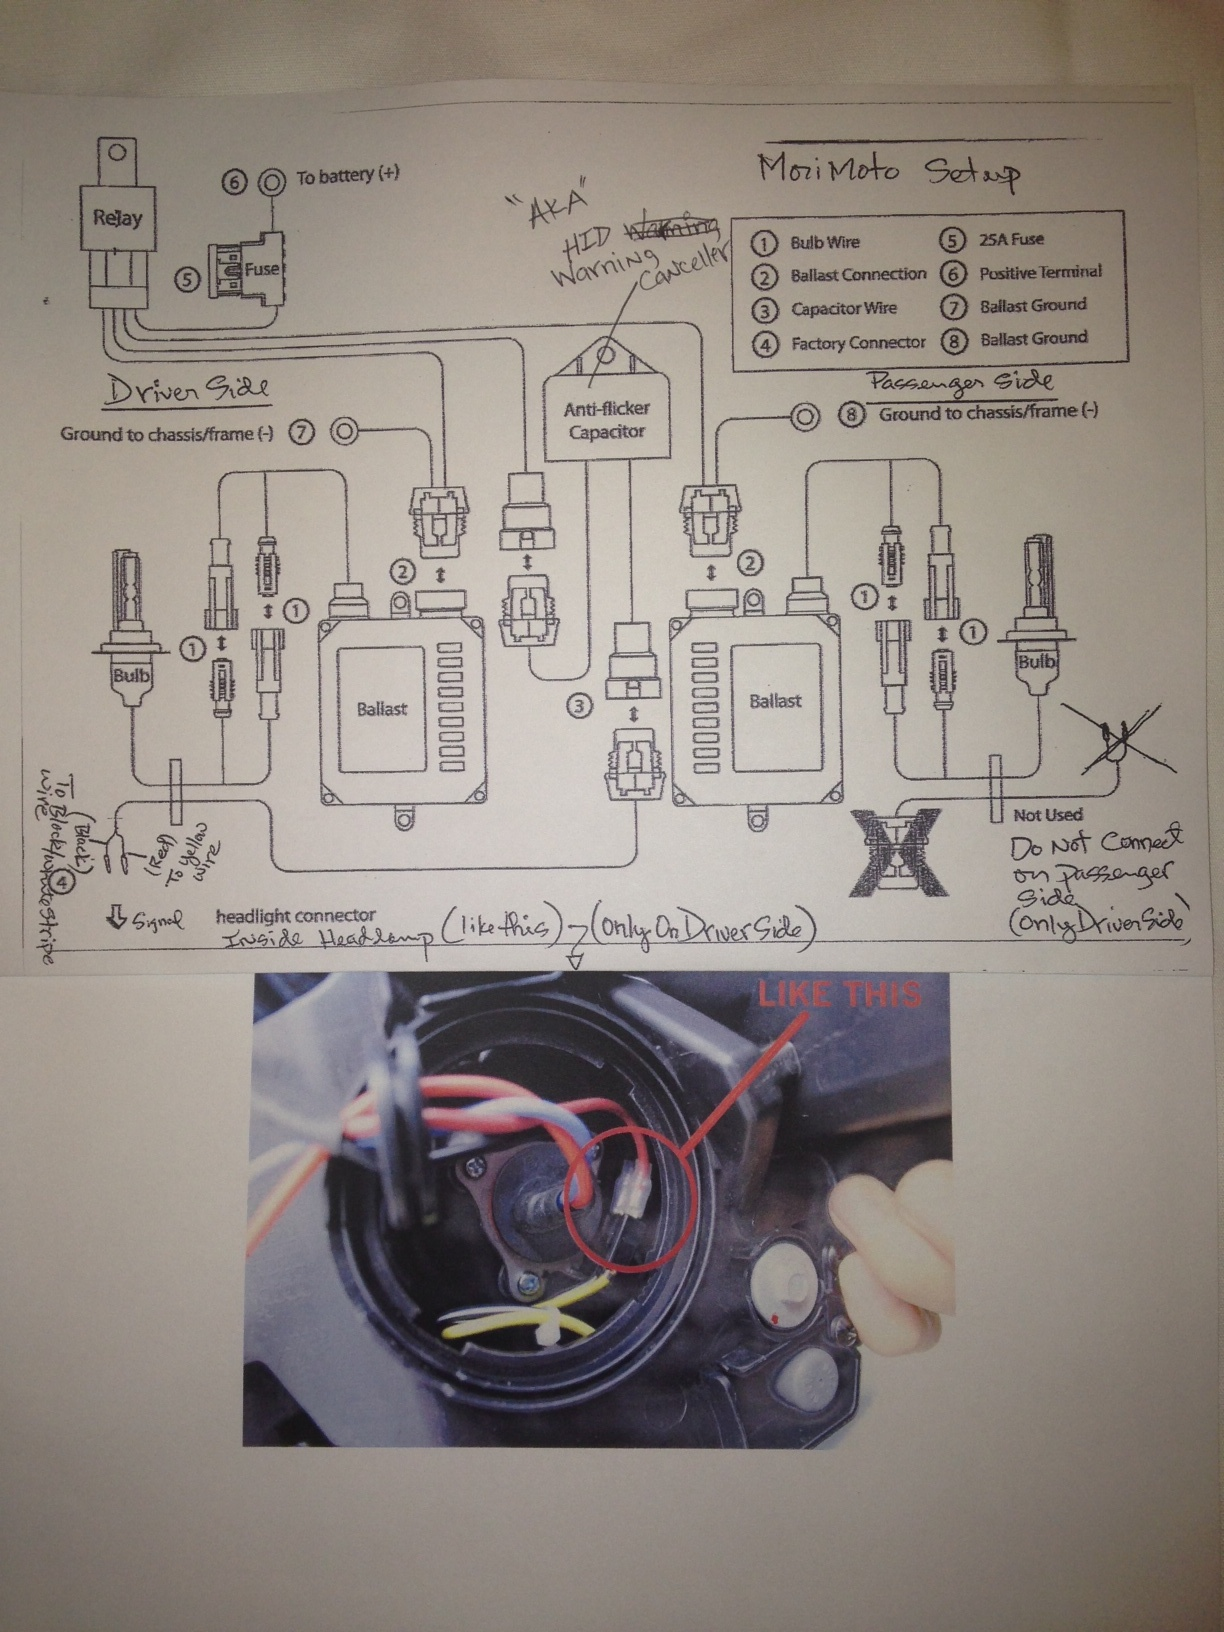 Amx Wiring Harness Free Download Wiring Diagrams Pictures Wiring